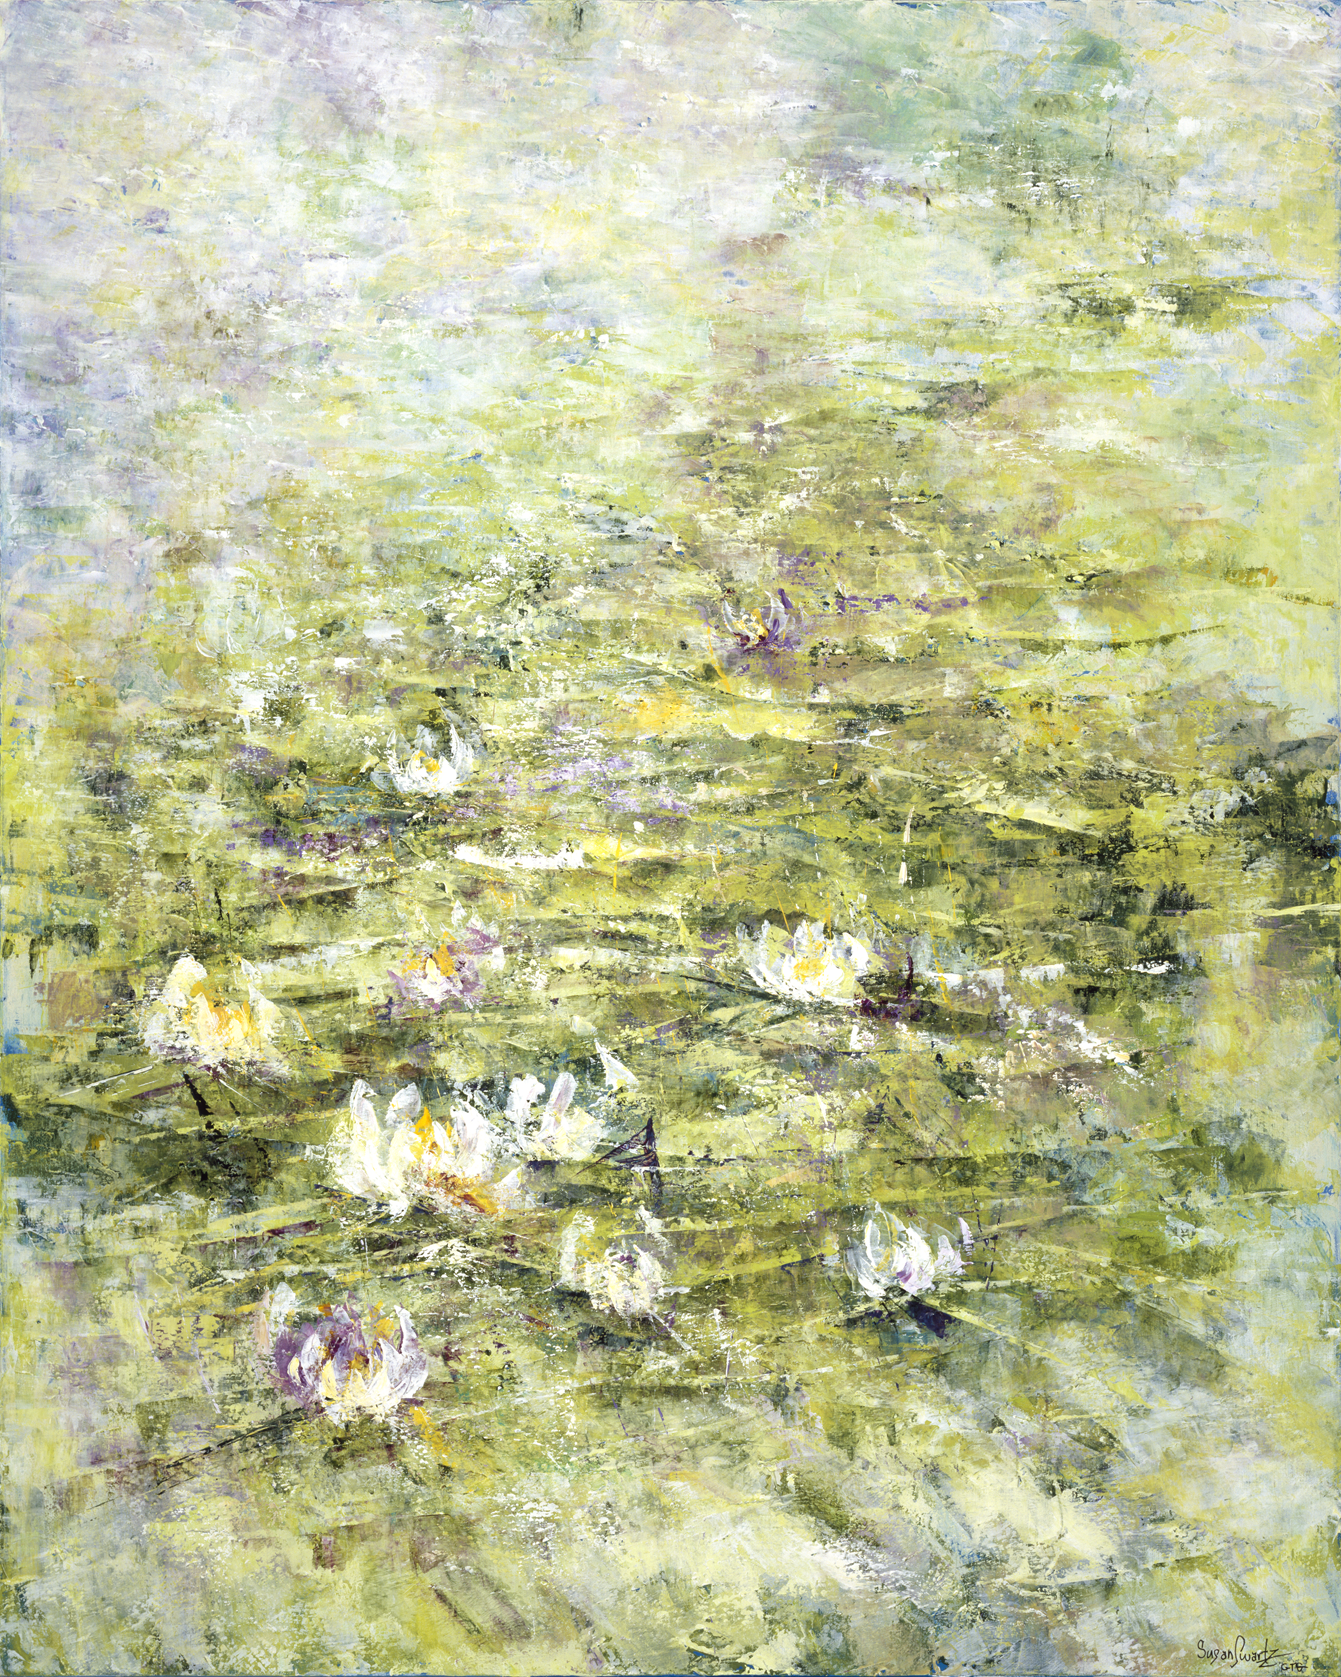 Lilies Unveiled 48 x 60